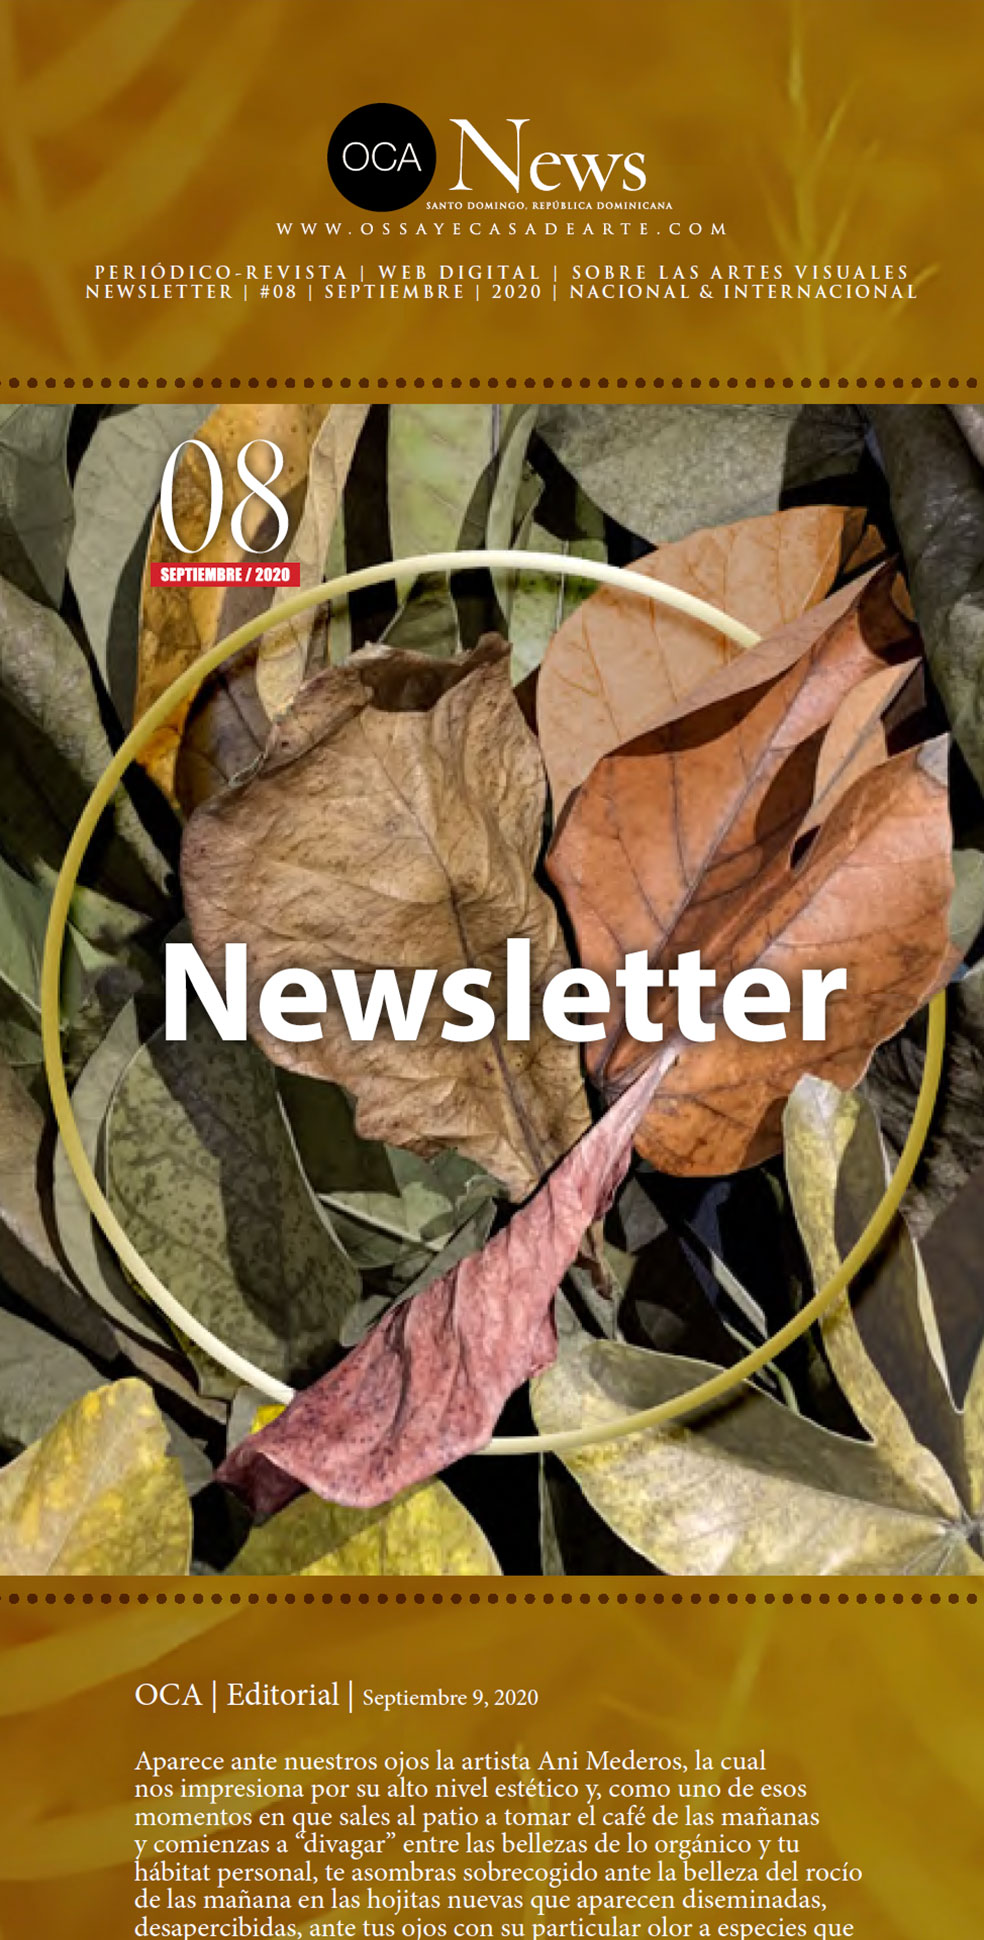 Cover-NewsLetter-08